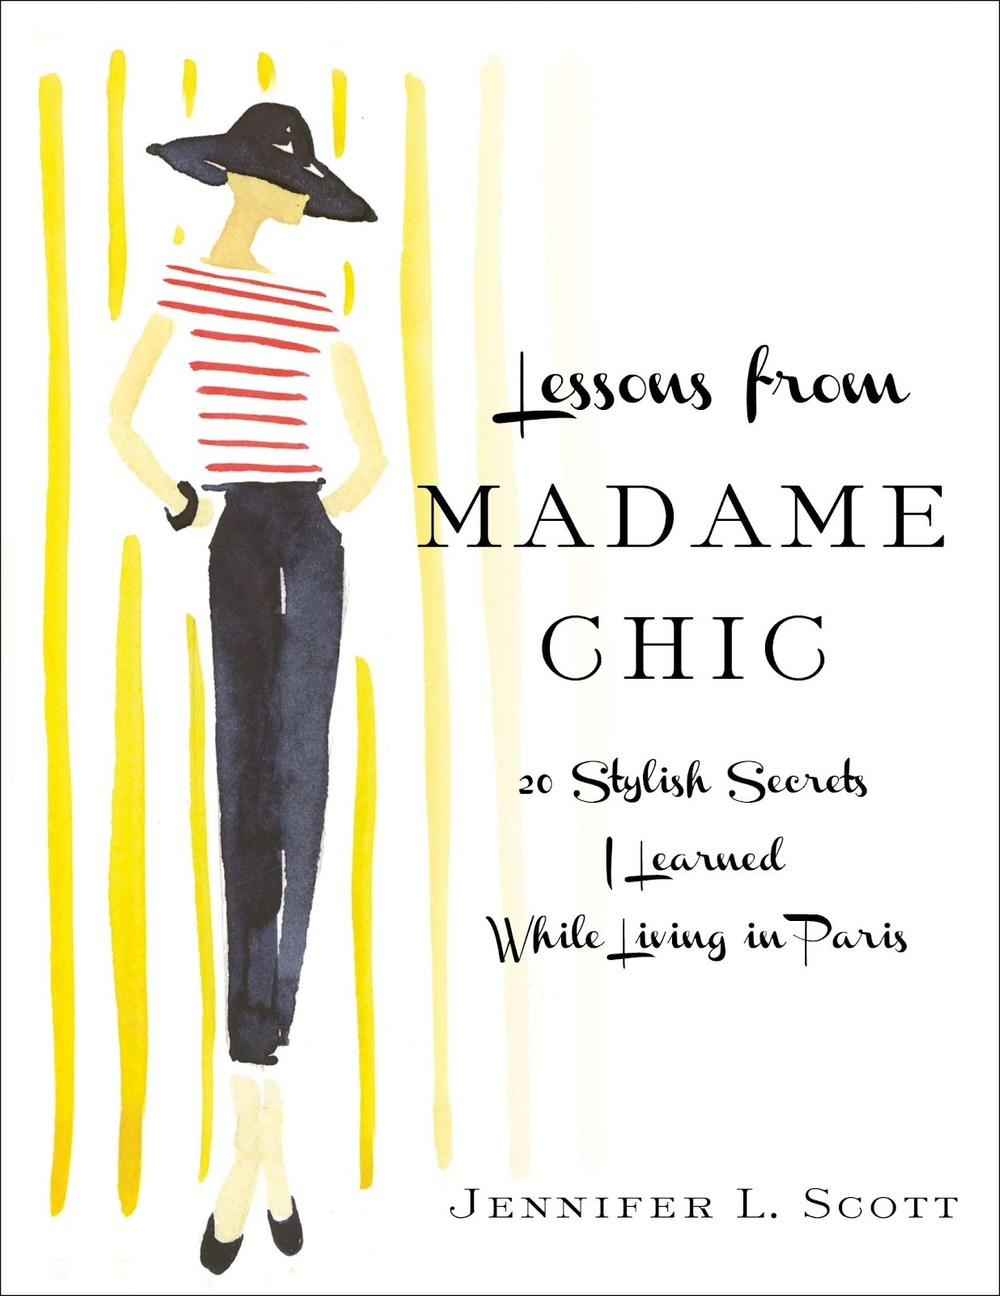 Madame Chic Final Cover.jpg